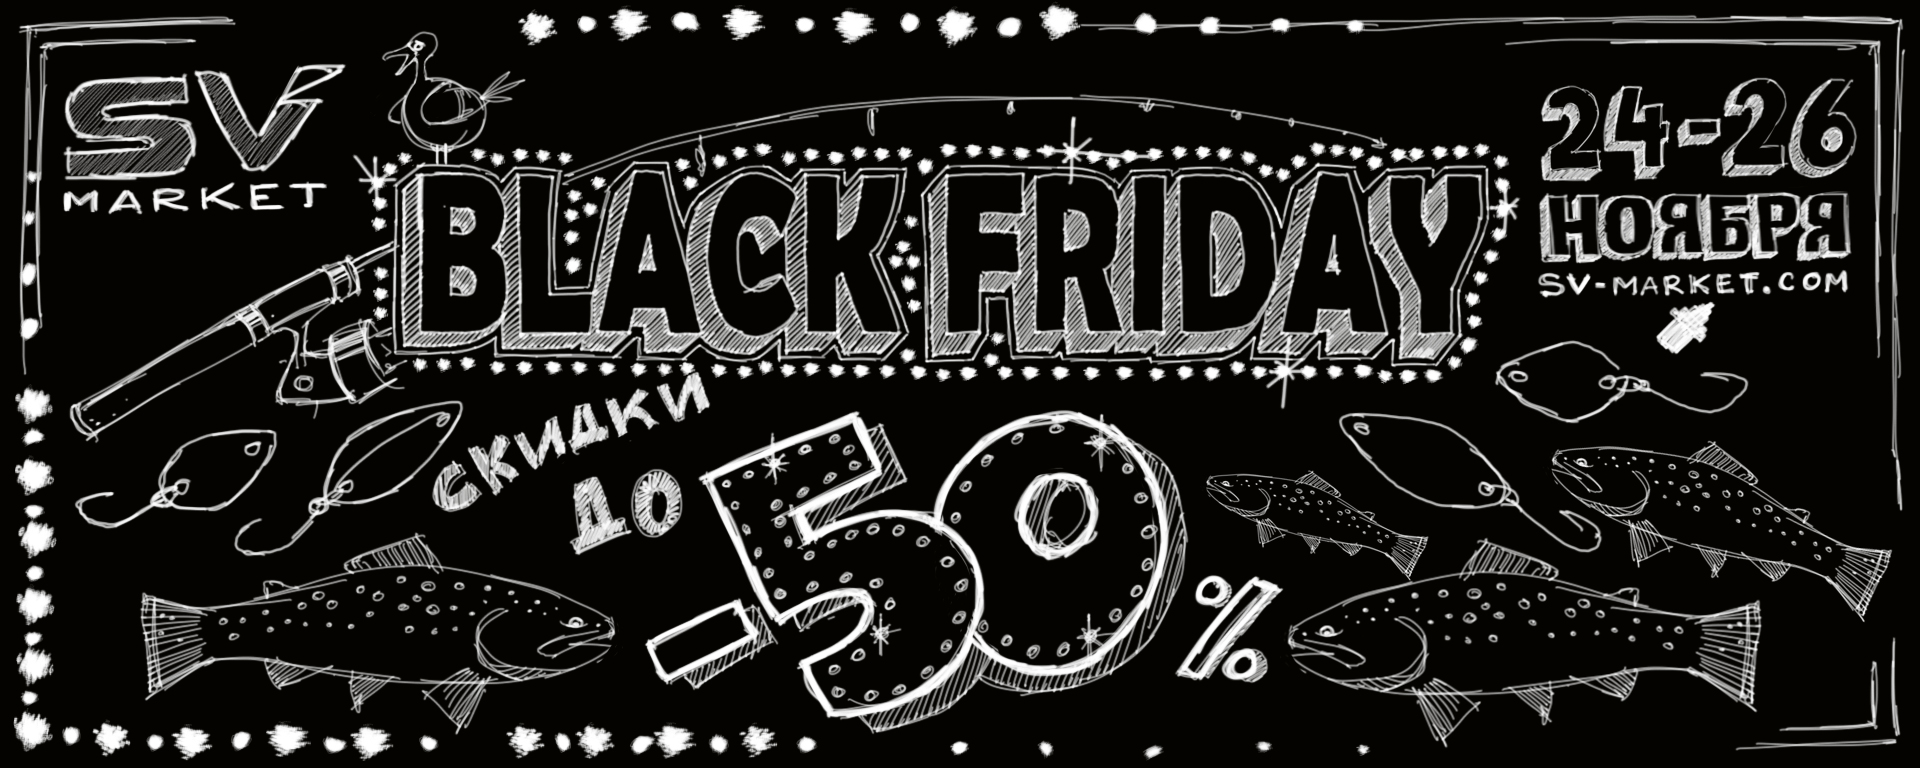 black-friday-sv-marketcom.jpg